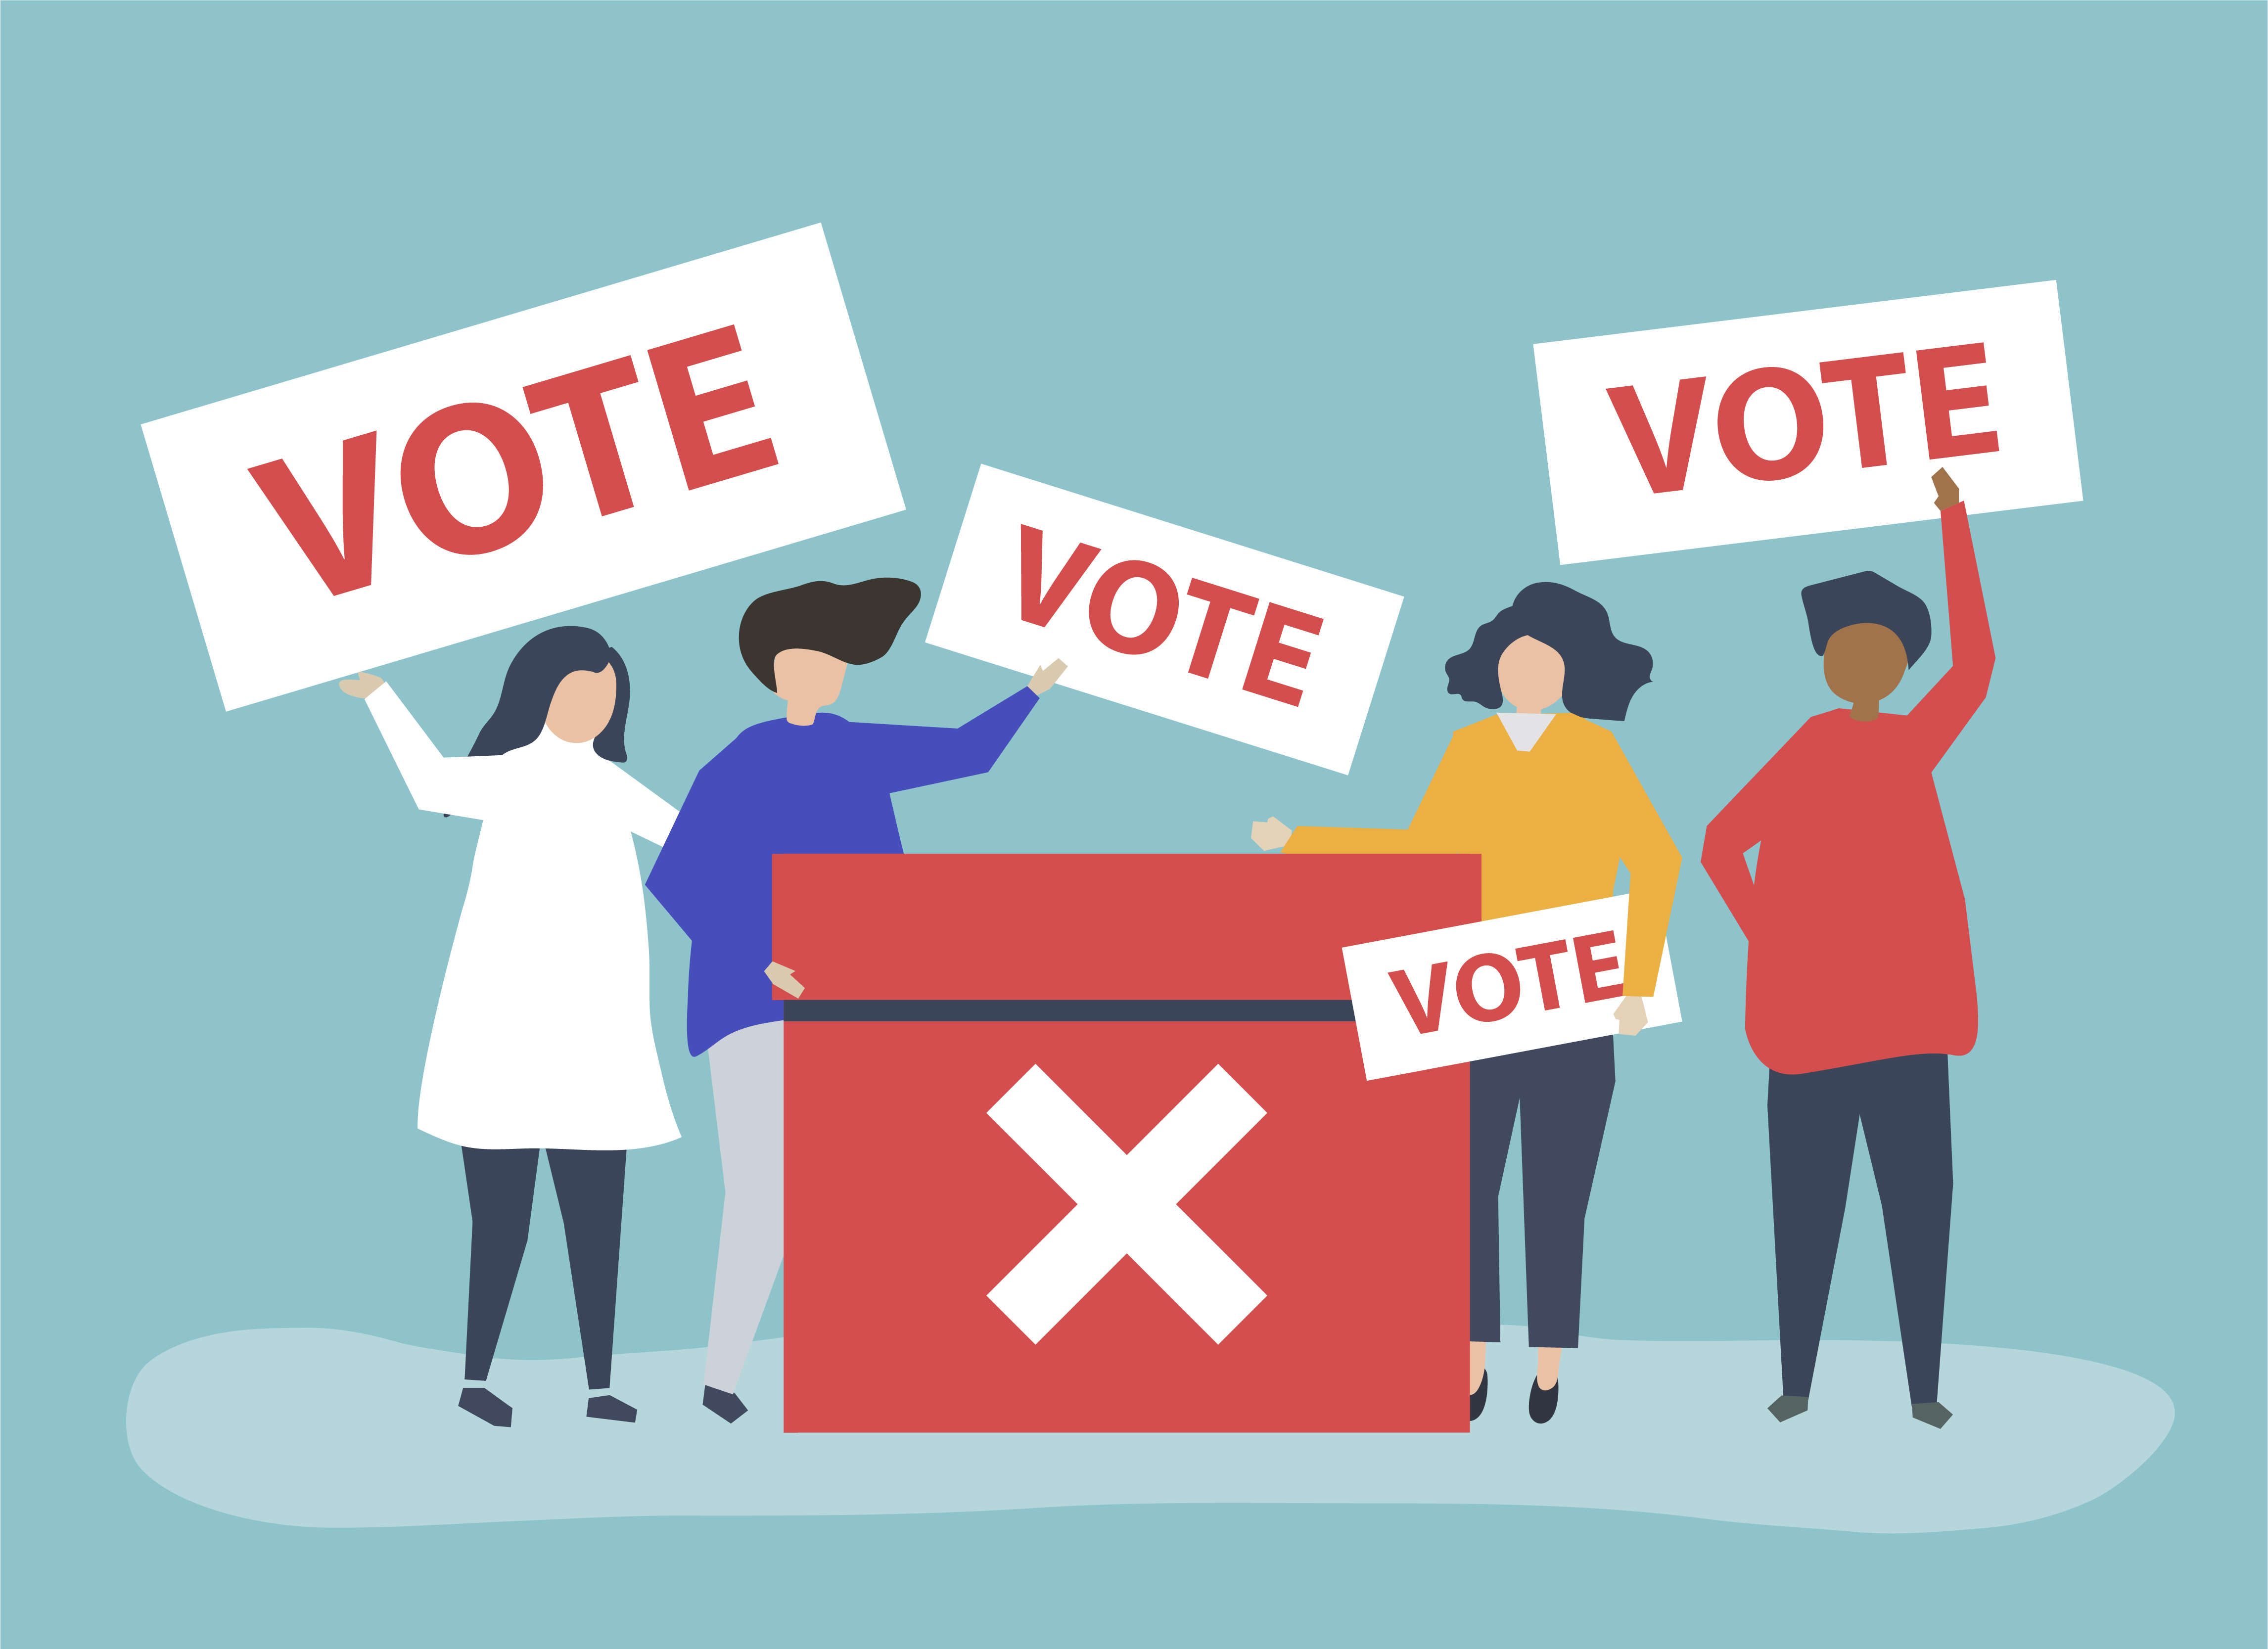 clip art photo of group of people voting